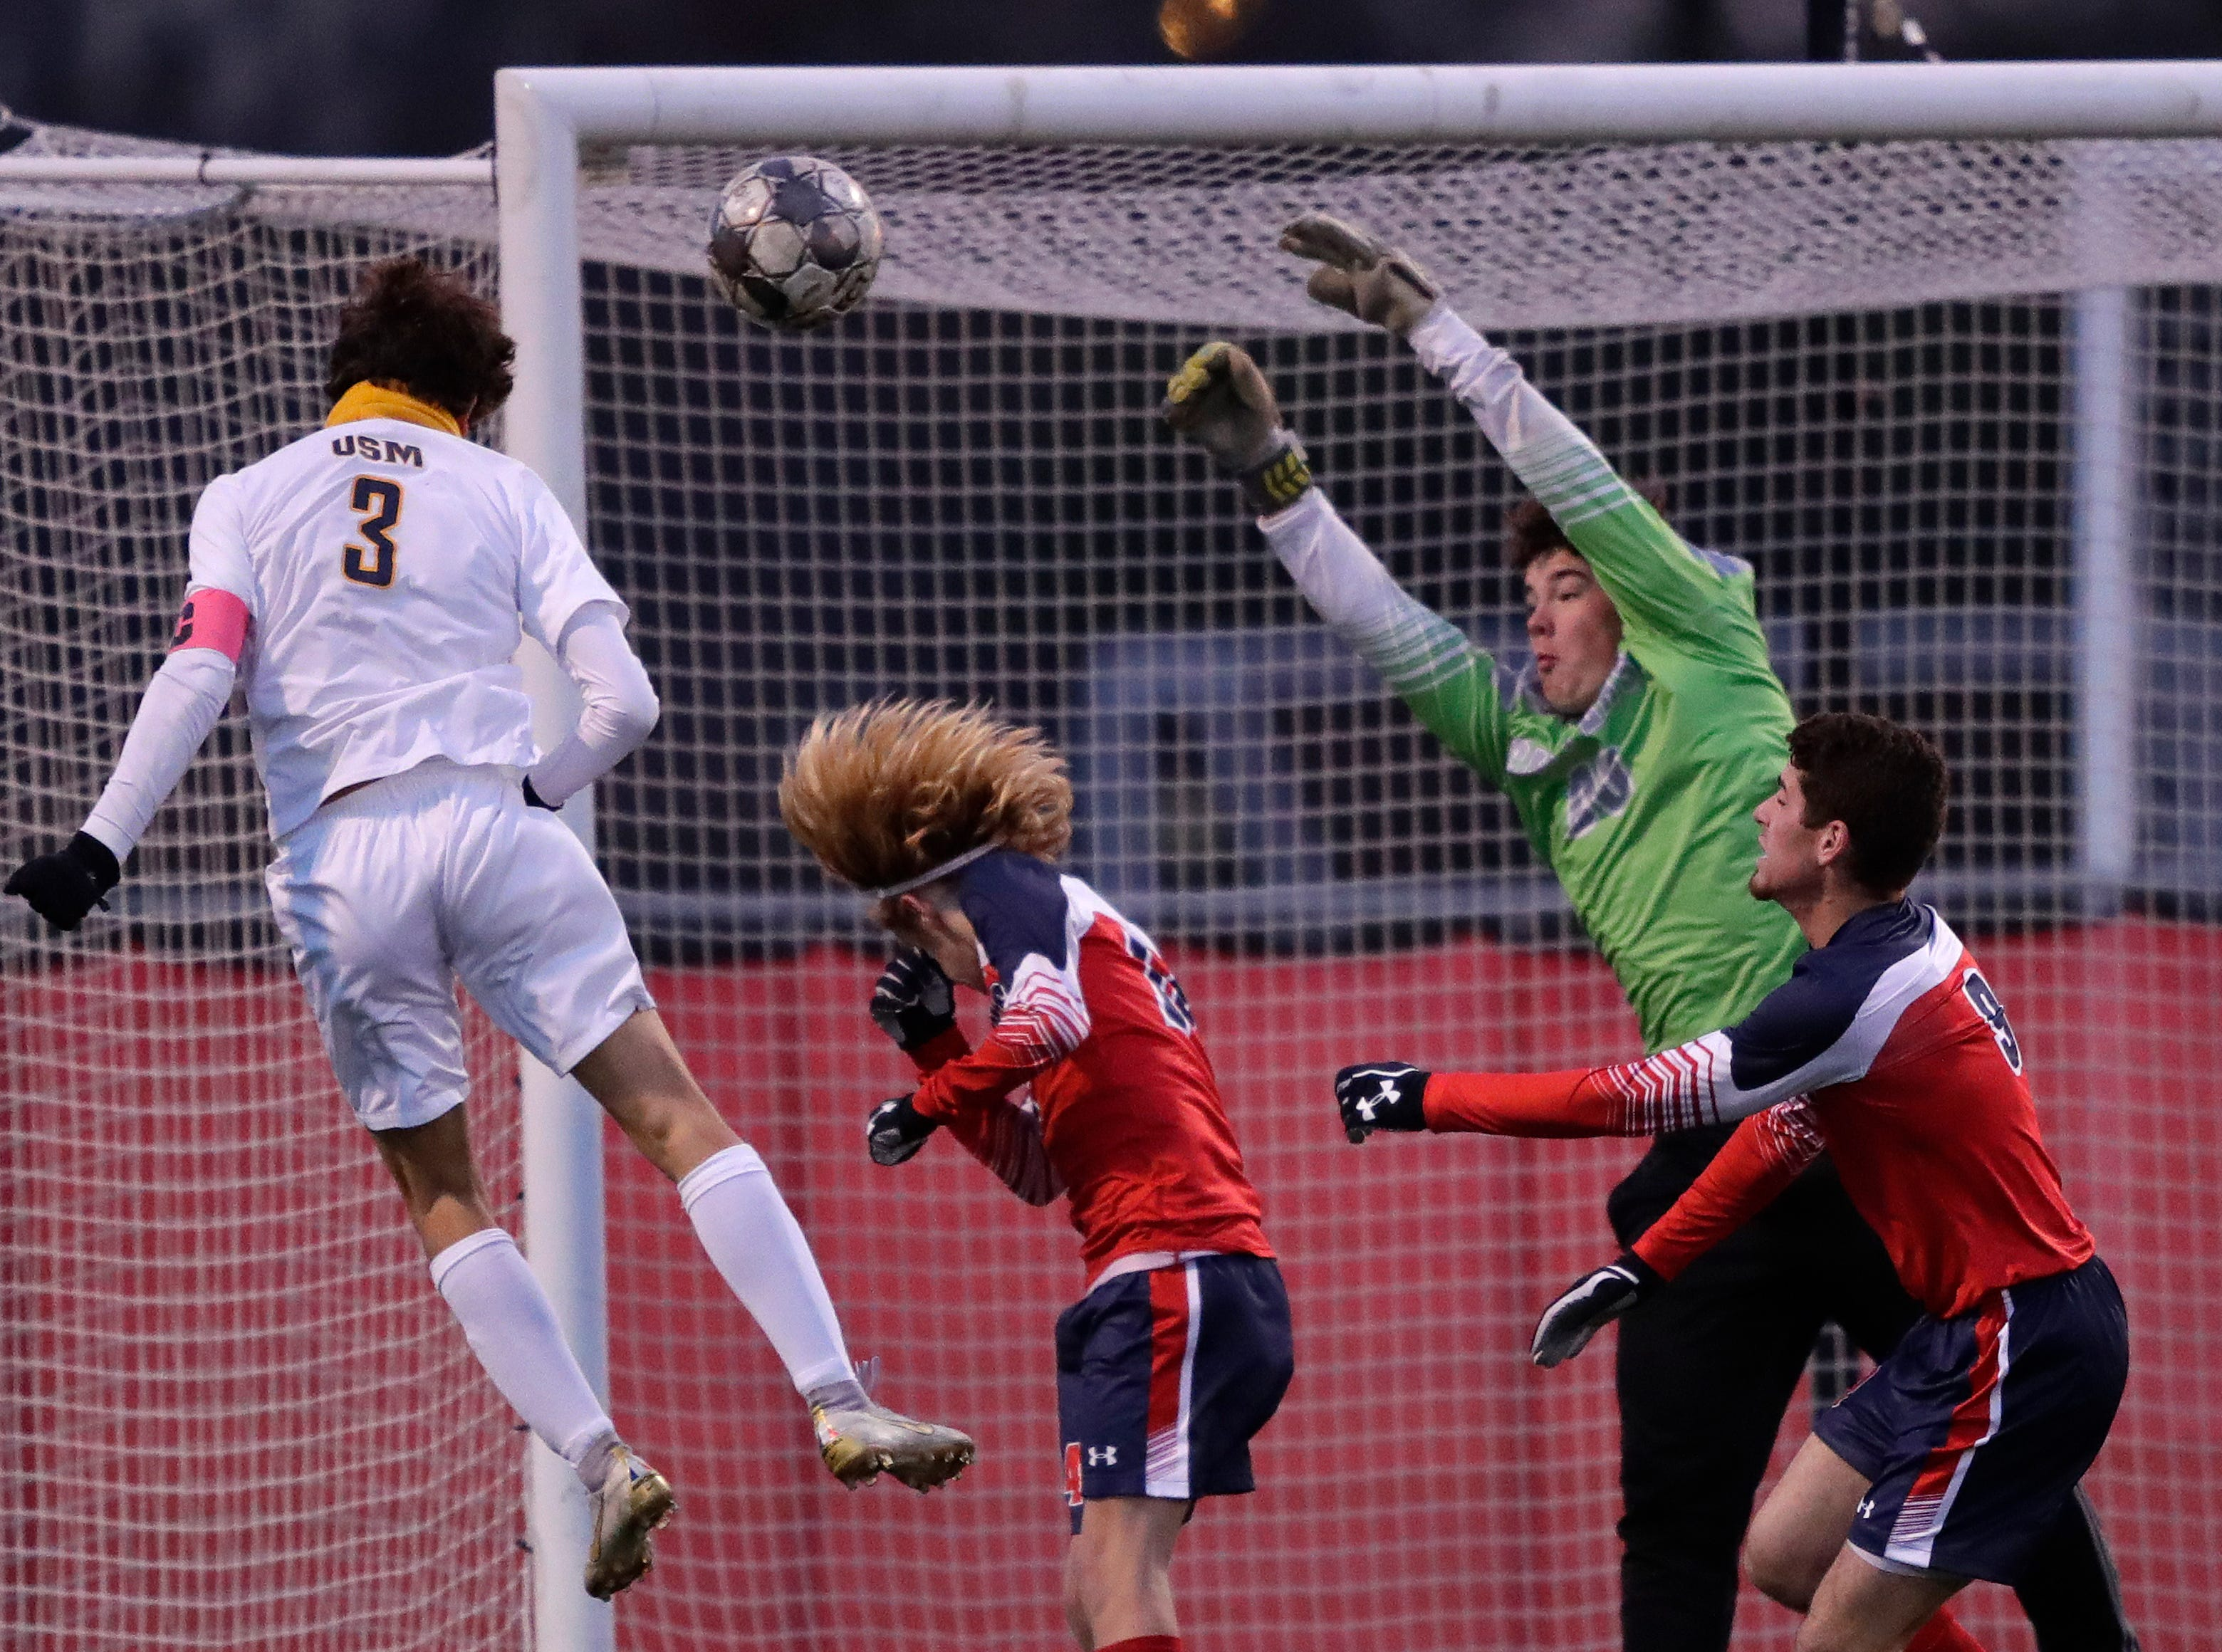 University School of Milwaukee's Matias Dermond (3) scores a goal on a header against Sturgeon Bay High School's goalie Oscar Polecheck (00) during their WIAA Division 4 state semifinal boys soccer game Friday, November 2, 2018, at Uihlein Soccer Park in Milwaukee, Wis. 